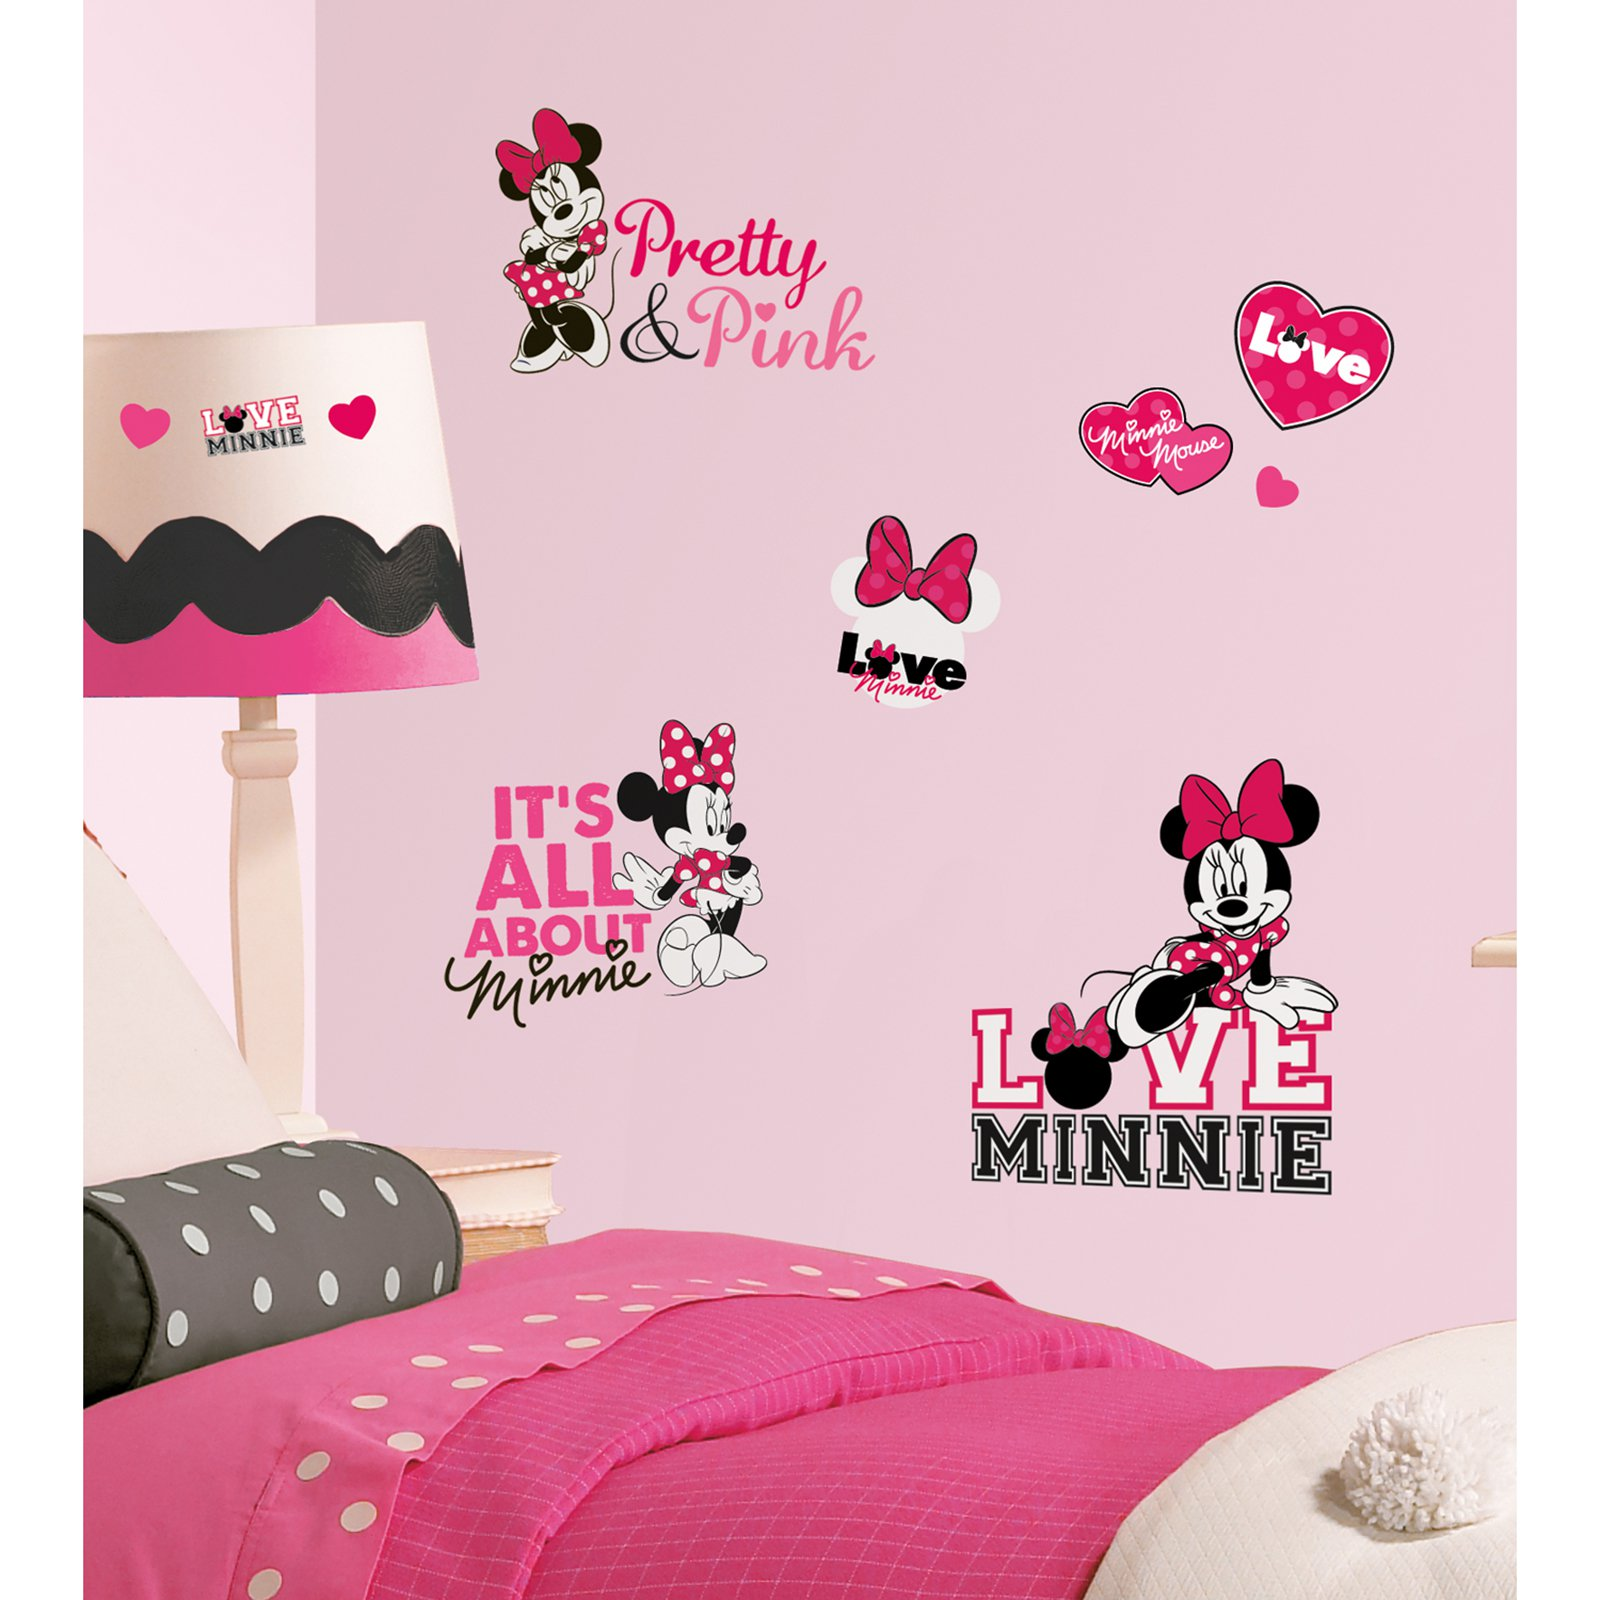 Black Wall Decals roommates mickey & friends - minnie mouse peel & stick giant wall